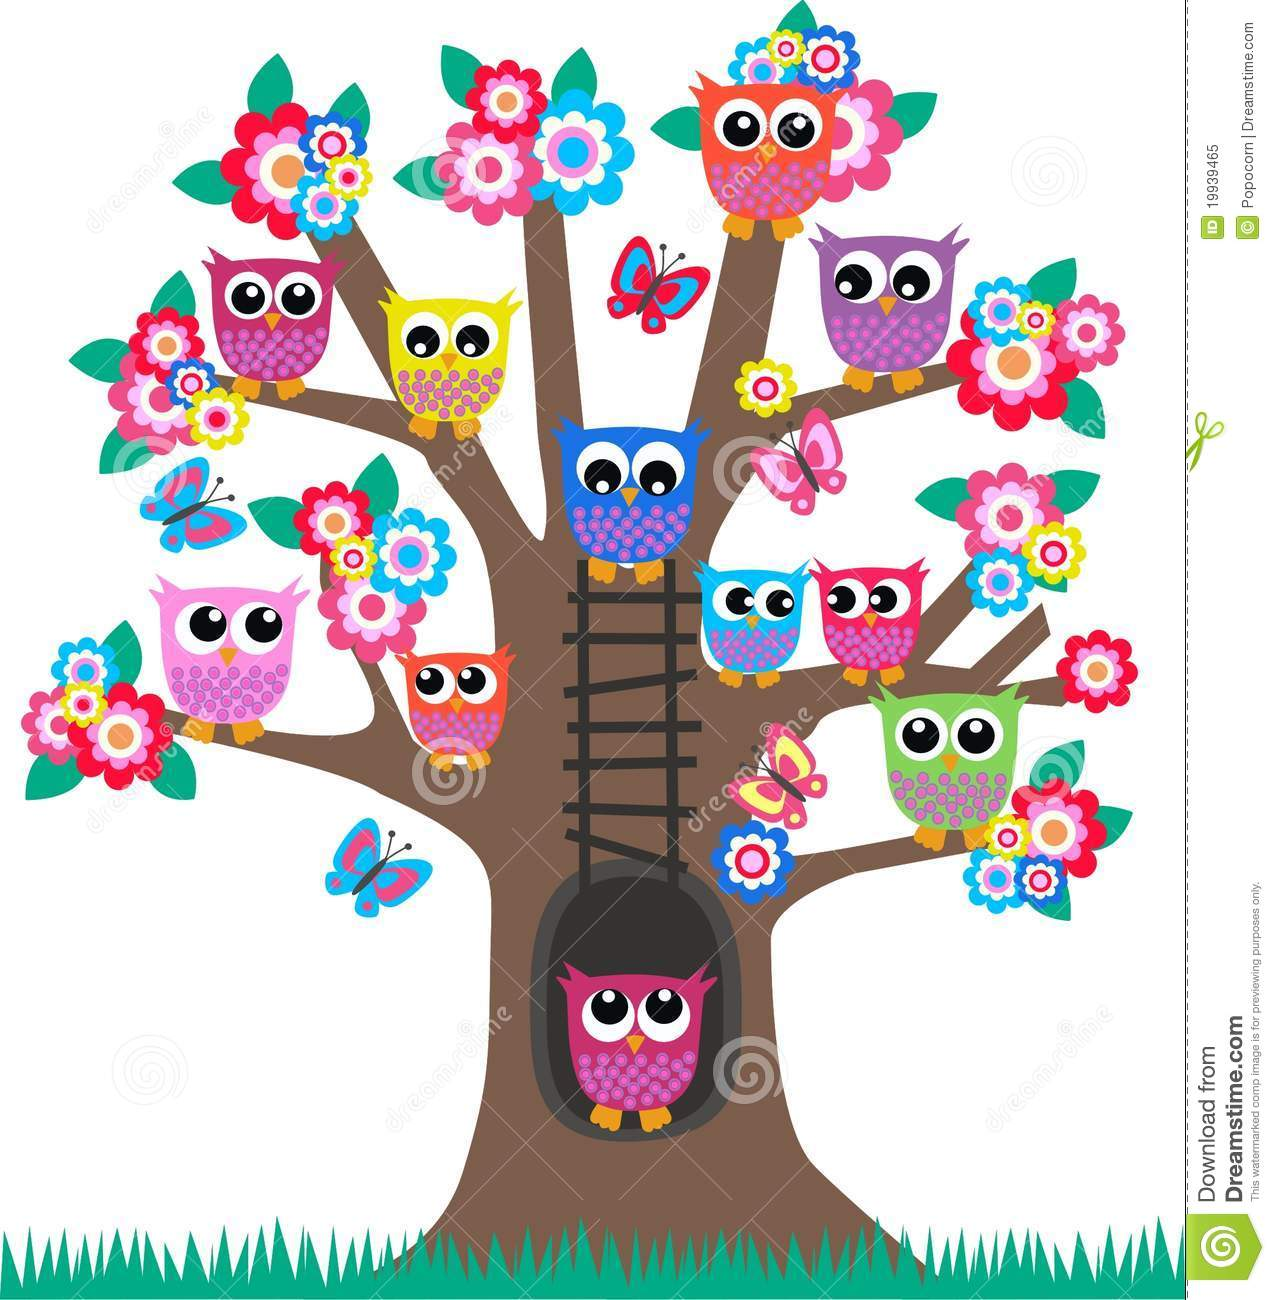 Blossom Wall Stickers Owls In A Tree Royalty Free Stock Photo Image 19939465